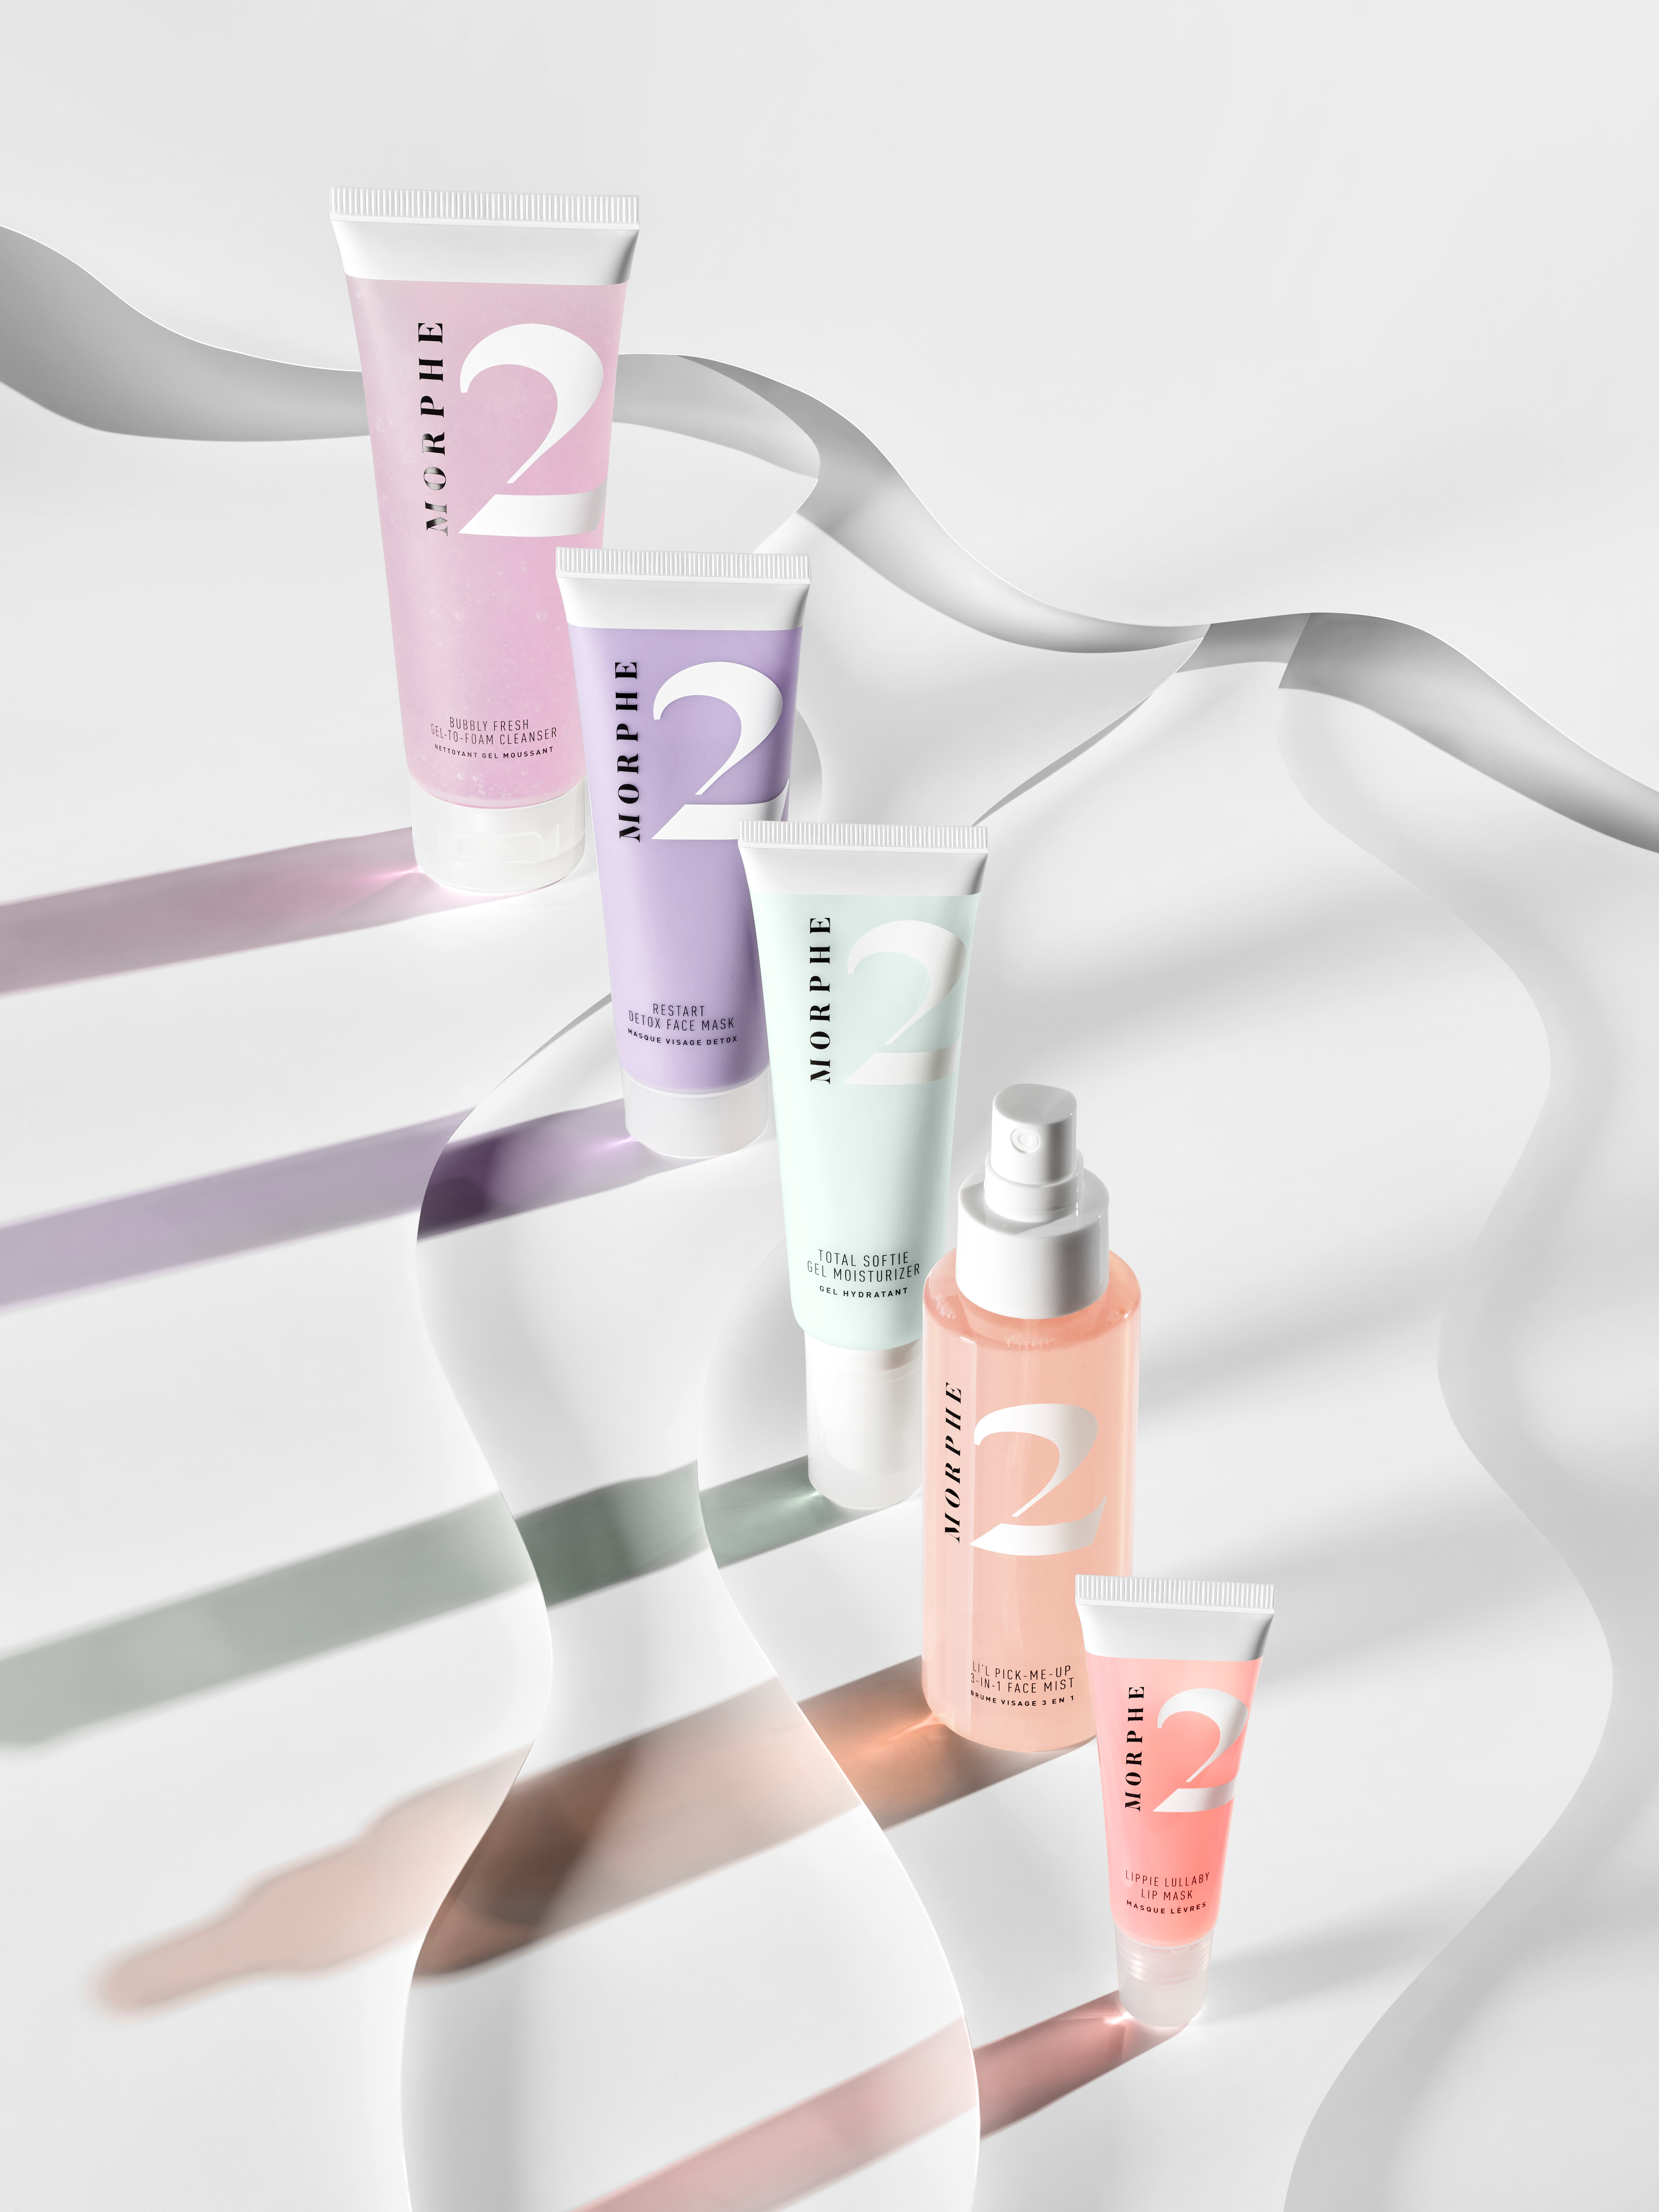 Morphe 2 Launched Its First Skincare Collection Morphine was an american alternative rock group formed by mark sandman, dana colley, and jerome deupree in cambridge, massachusetts in 1989. nylon